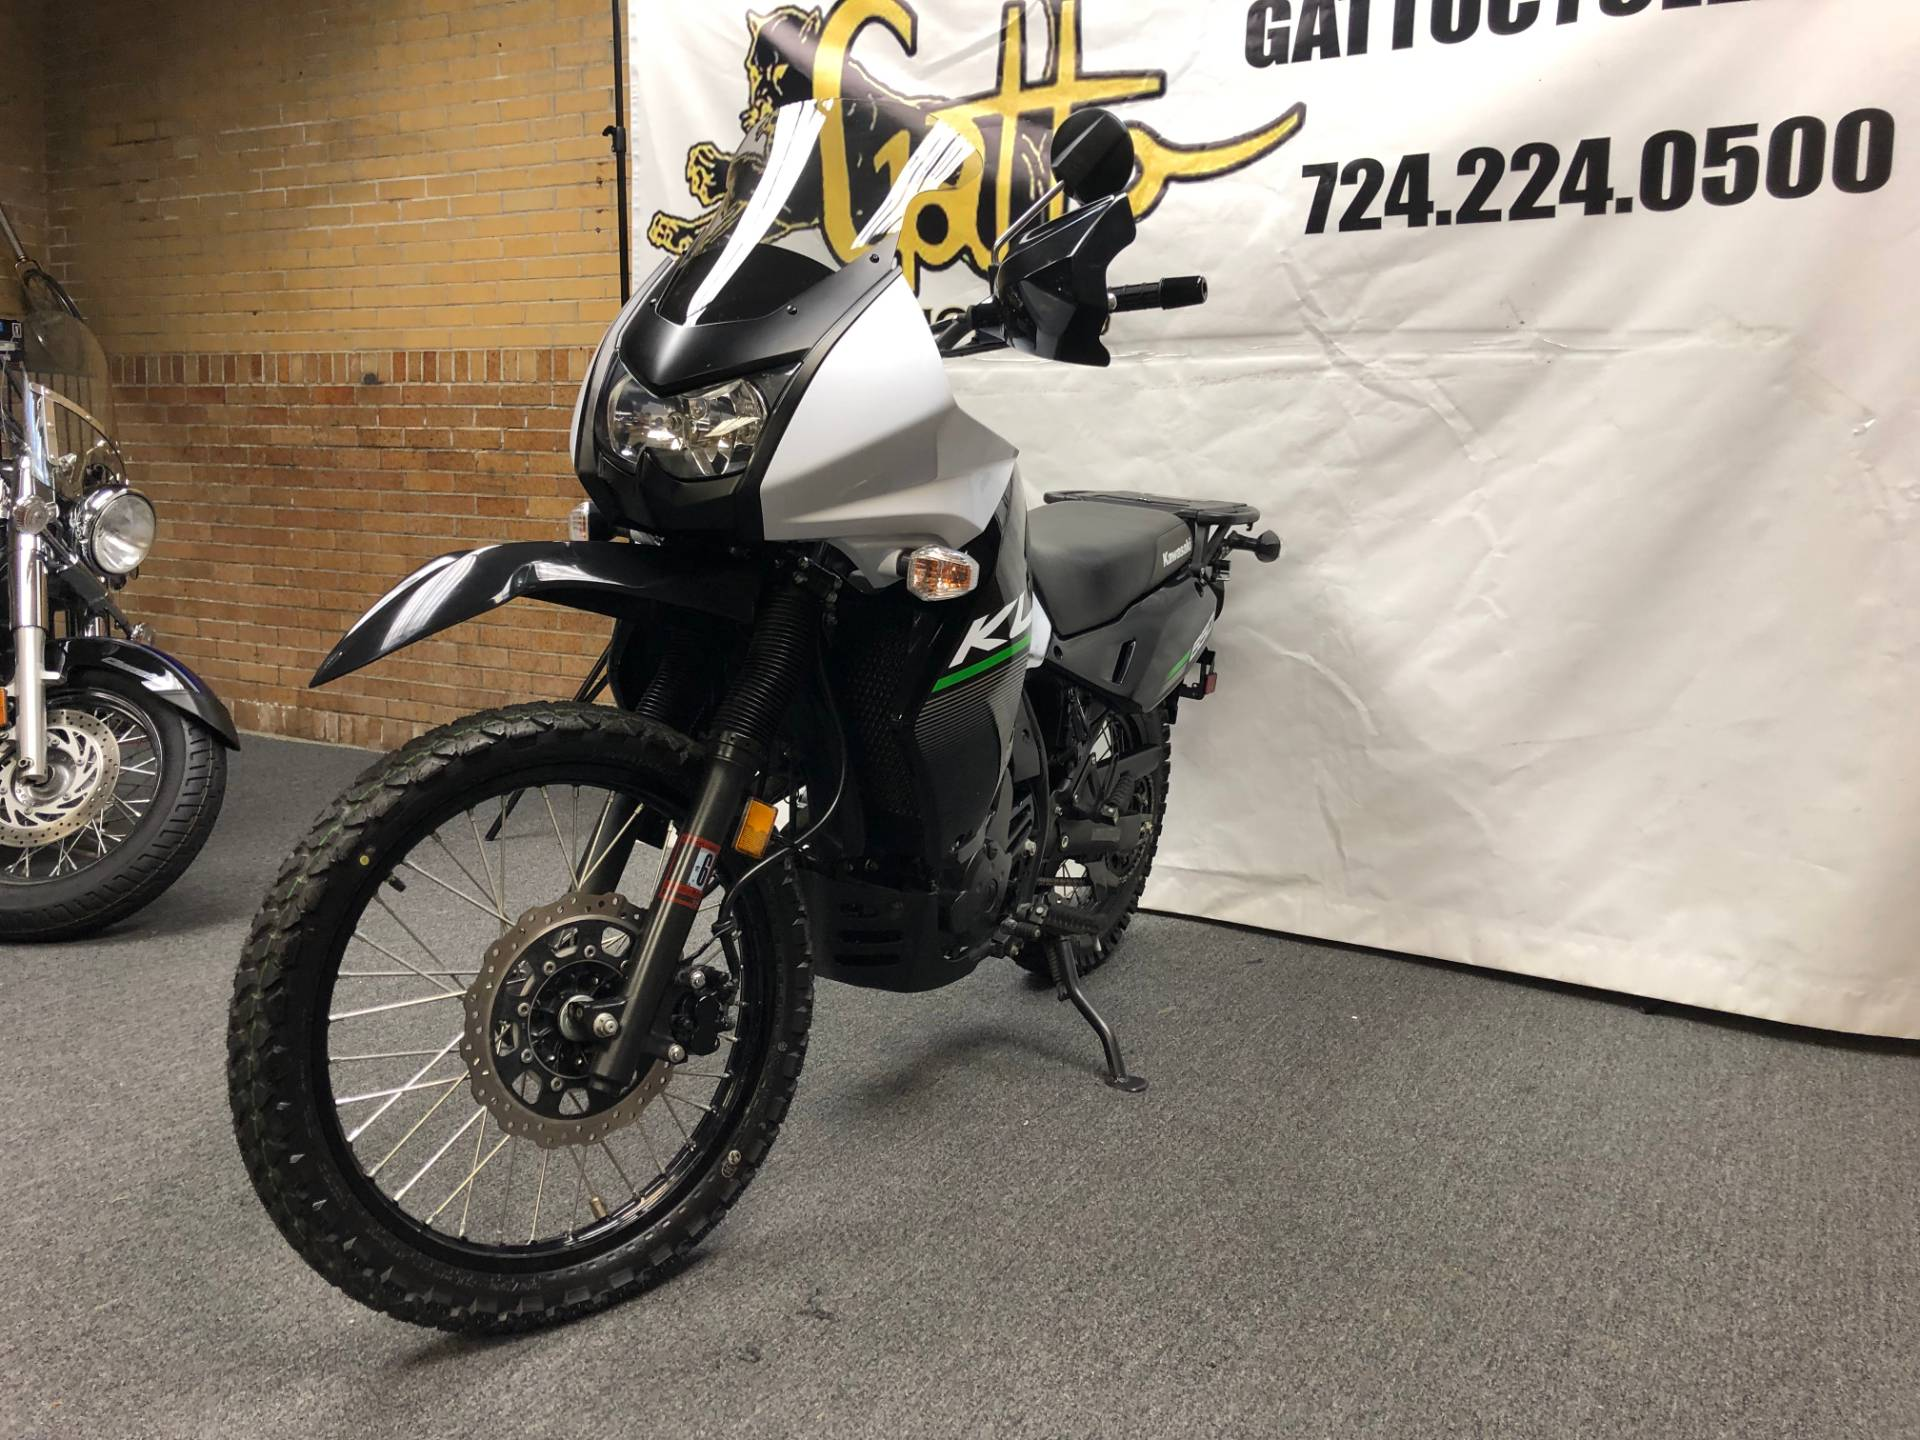 2015 Kawasaki KLR™650 in Tarentum, Pennsylvania - Photo 8